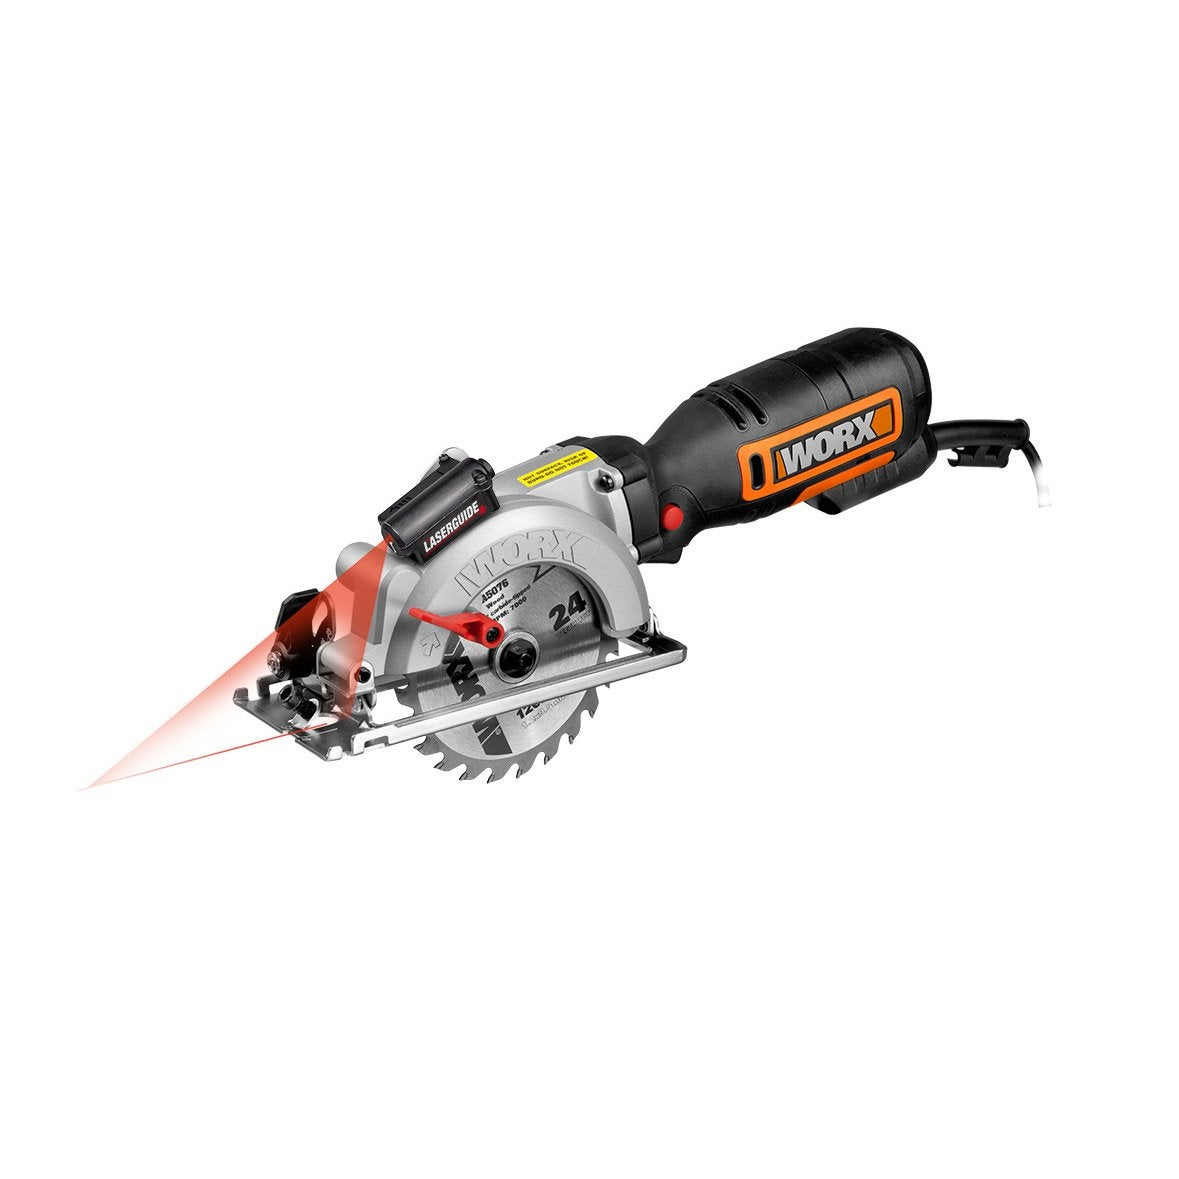 Scie circulaire filaire worx 710 w leroy merlin - Scie circulaire leroy merlin ...